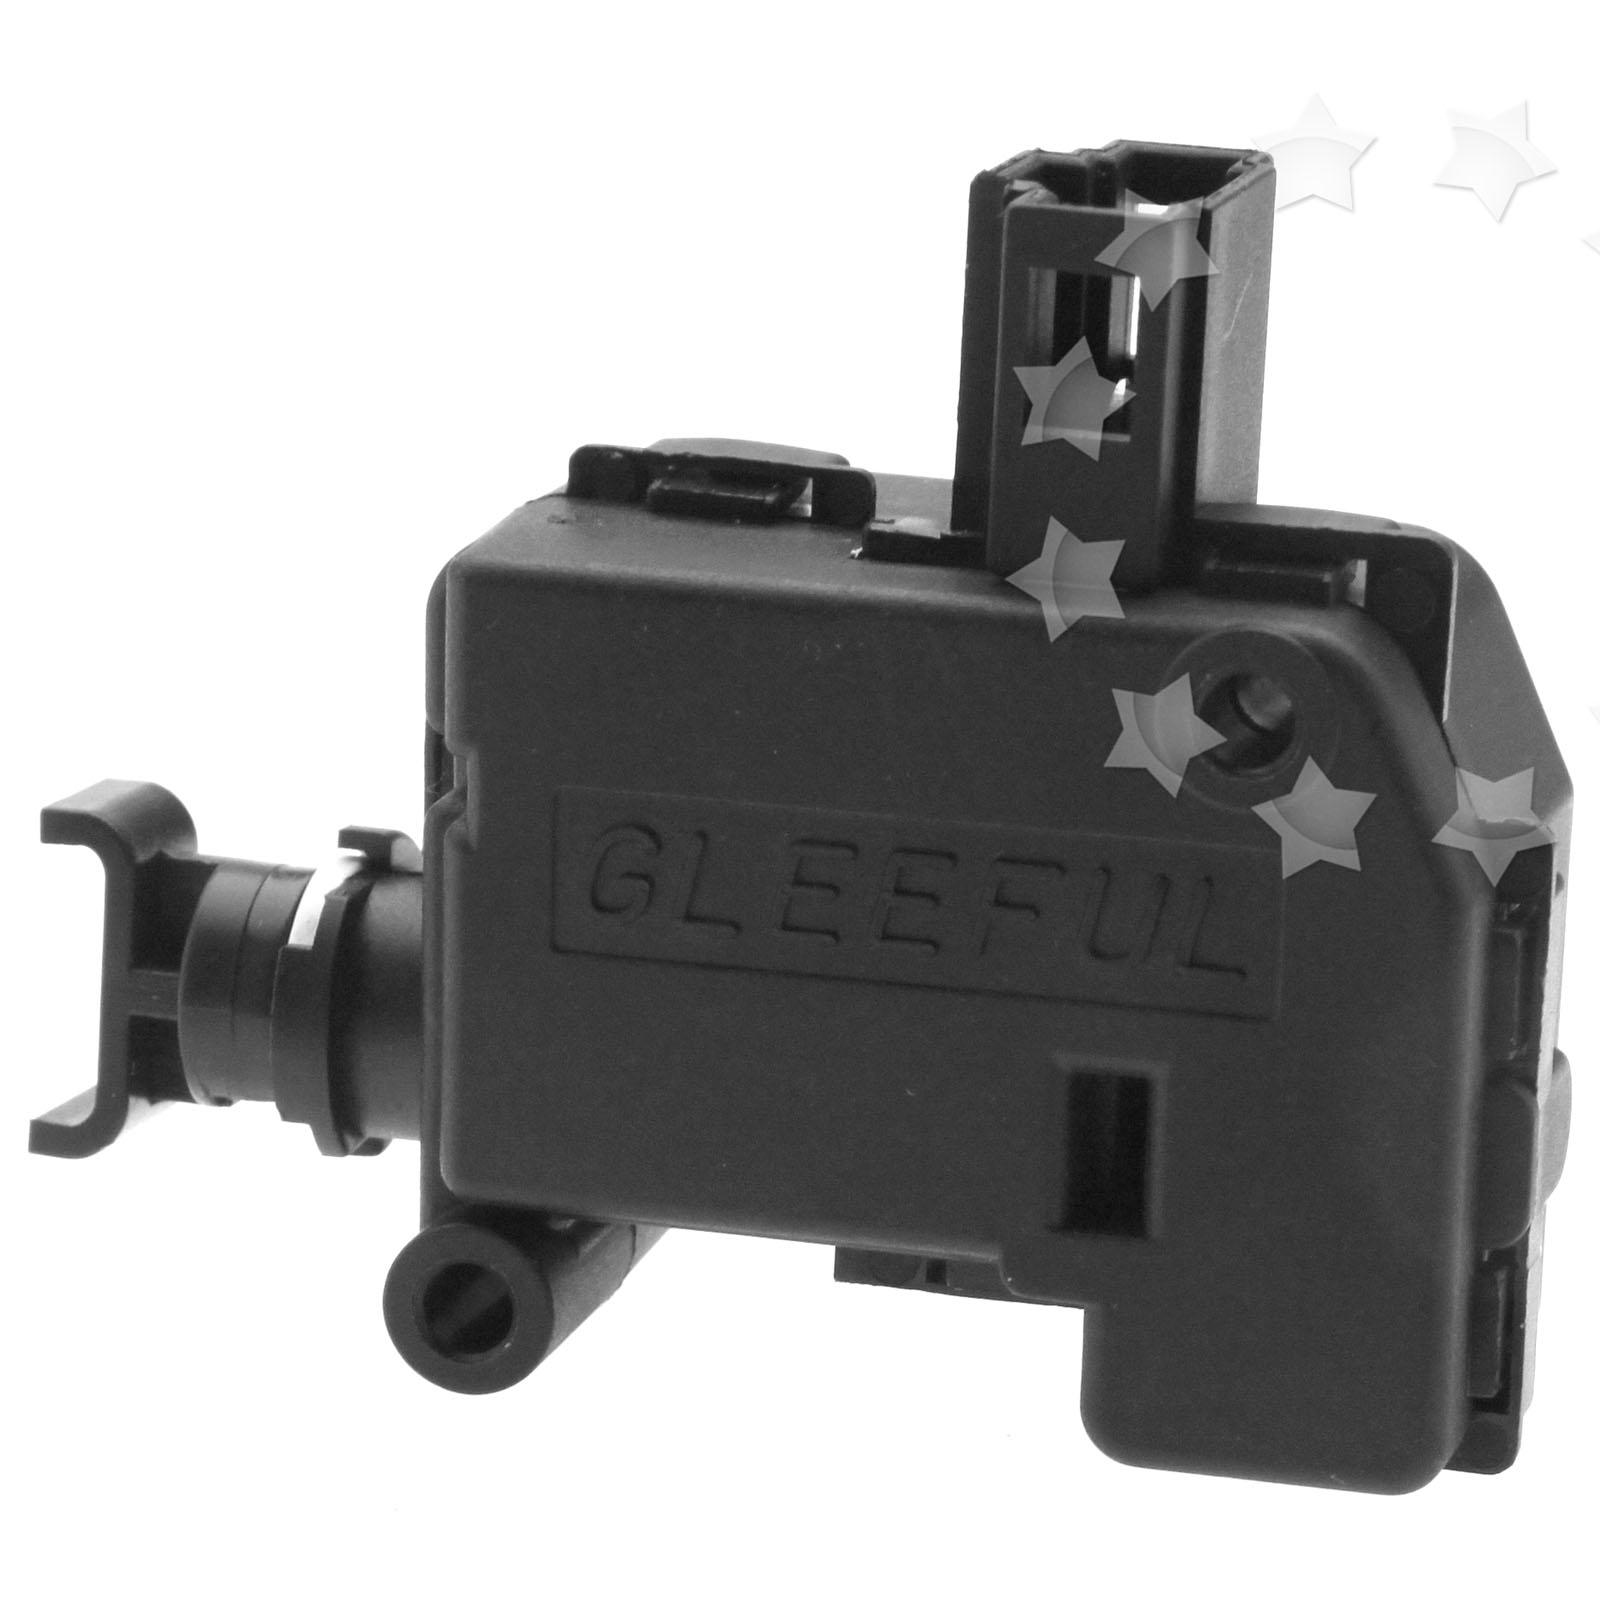 TAILGATE LOCKING ACTUATOR LOCK MECHANISM for VW Polo ...